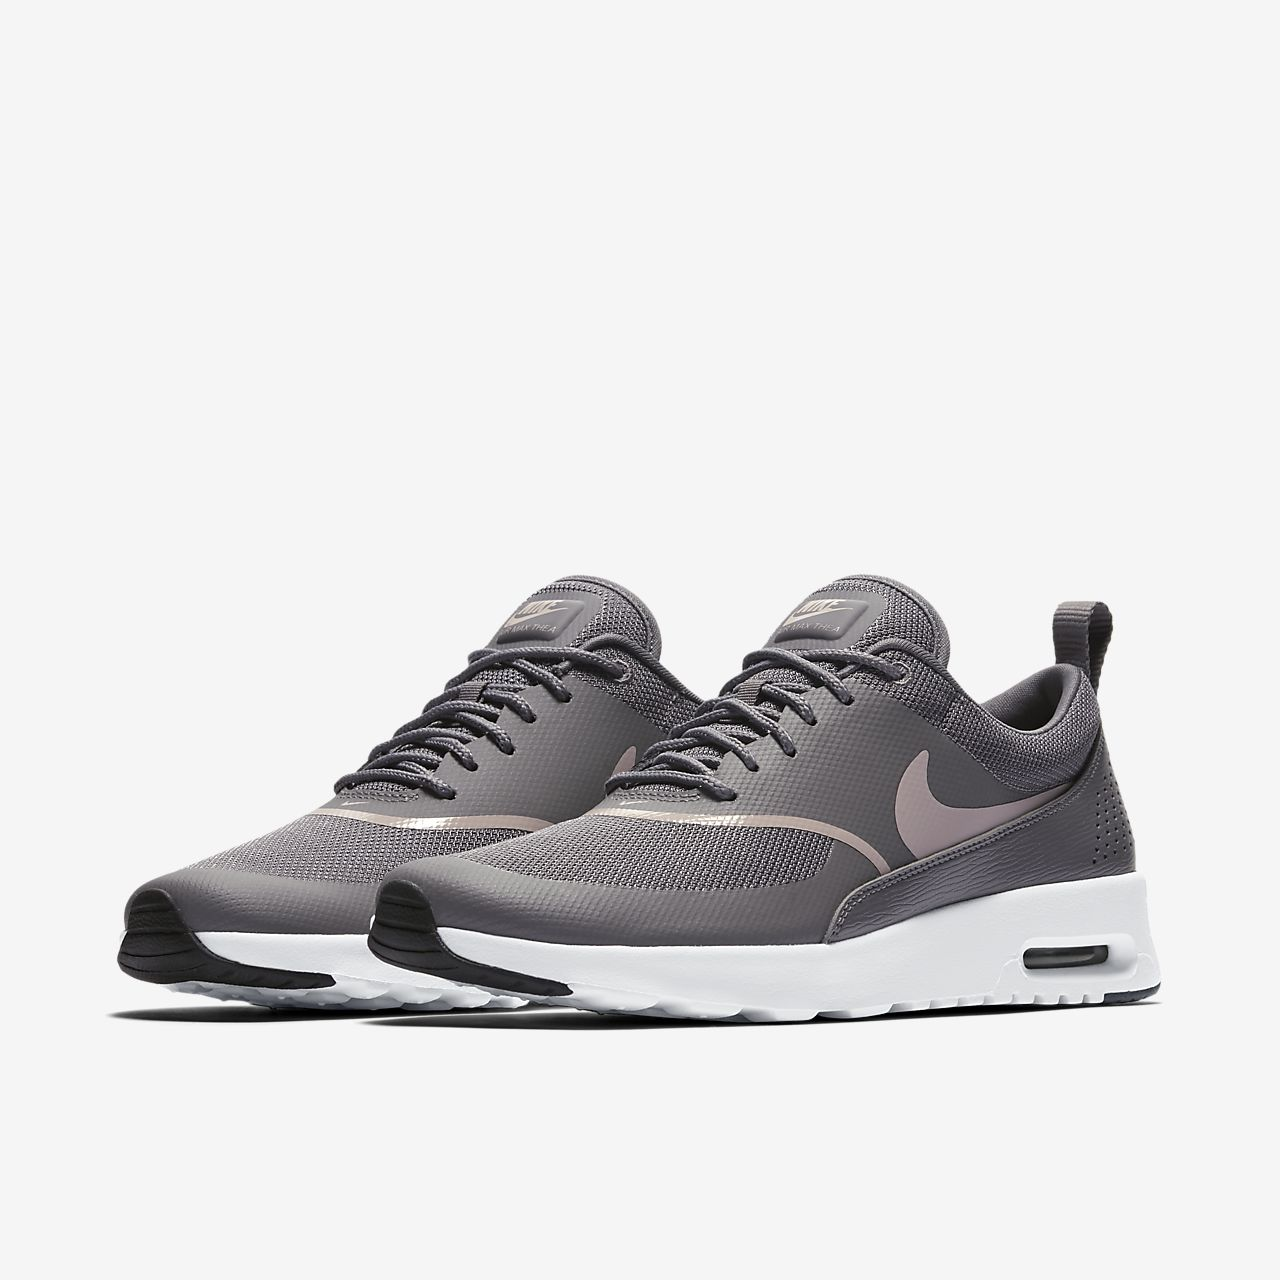 nike air max thea designs in machine